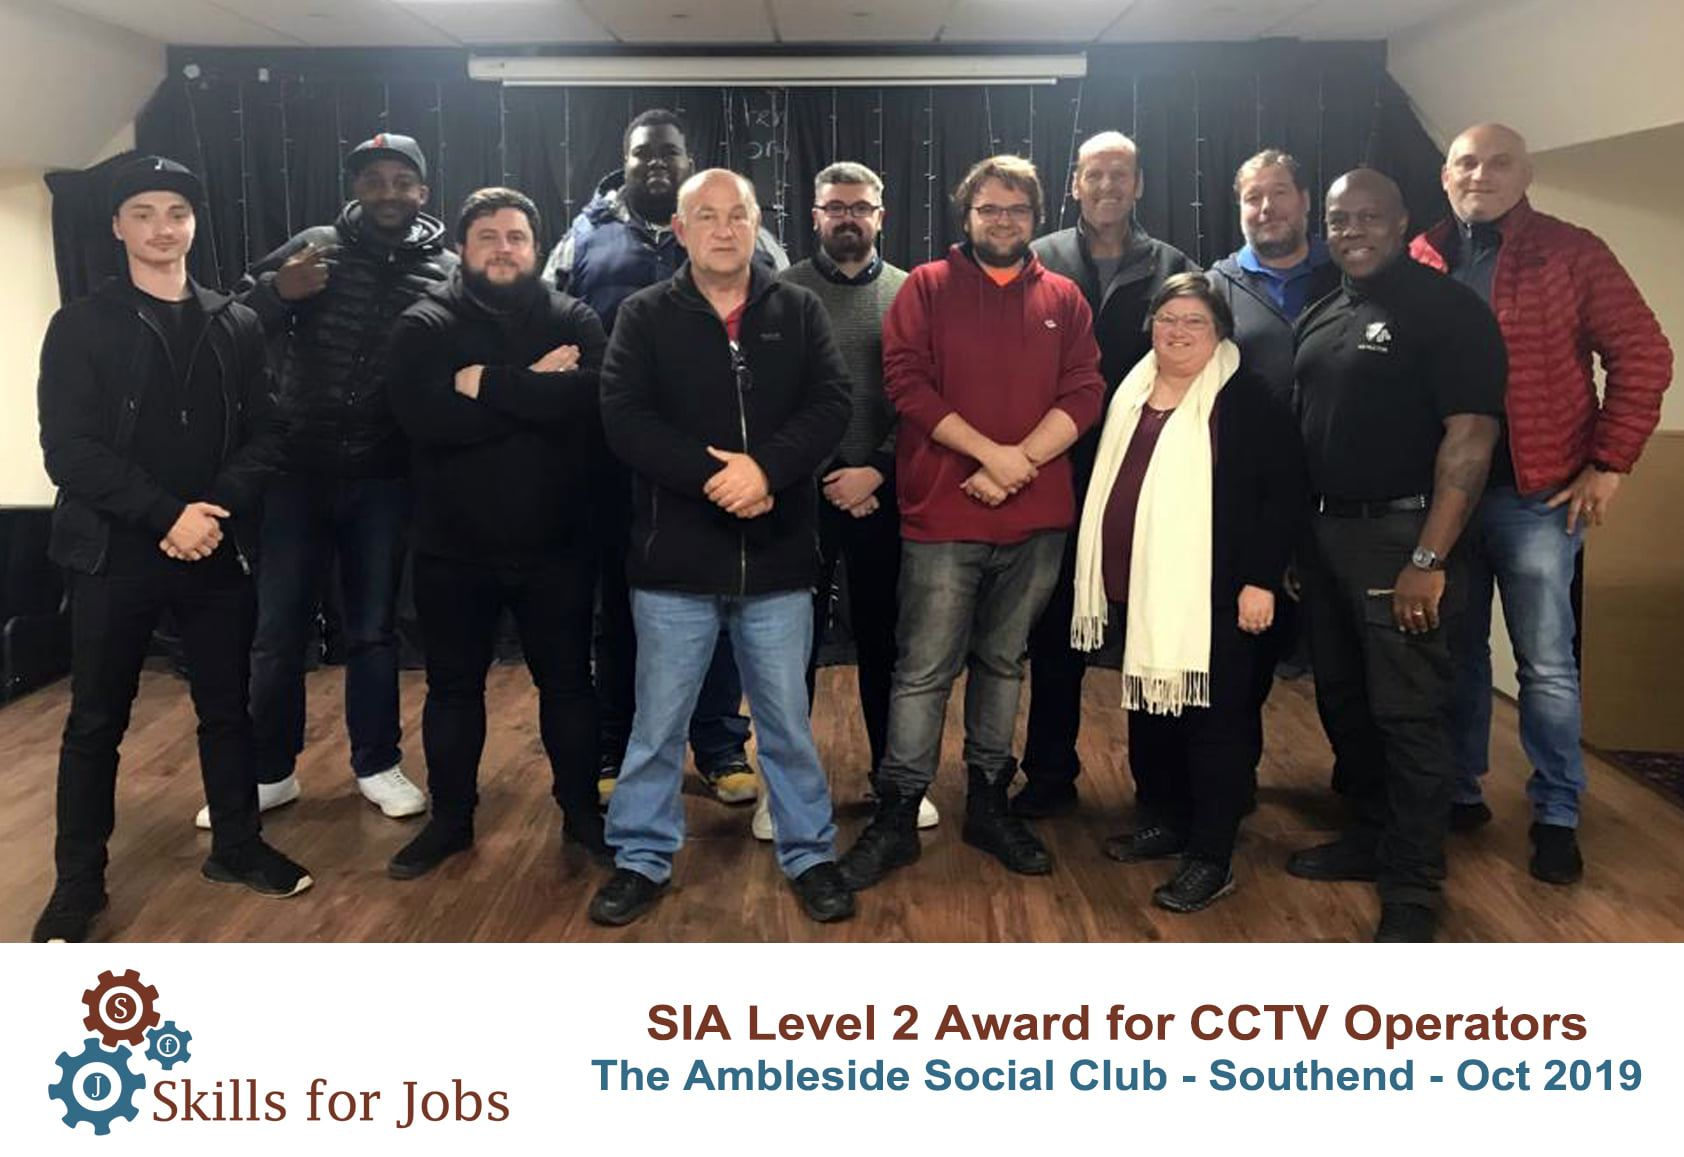 Southend - SIA Level 2 Award for CCTV Operators - October 2019